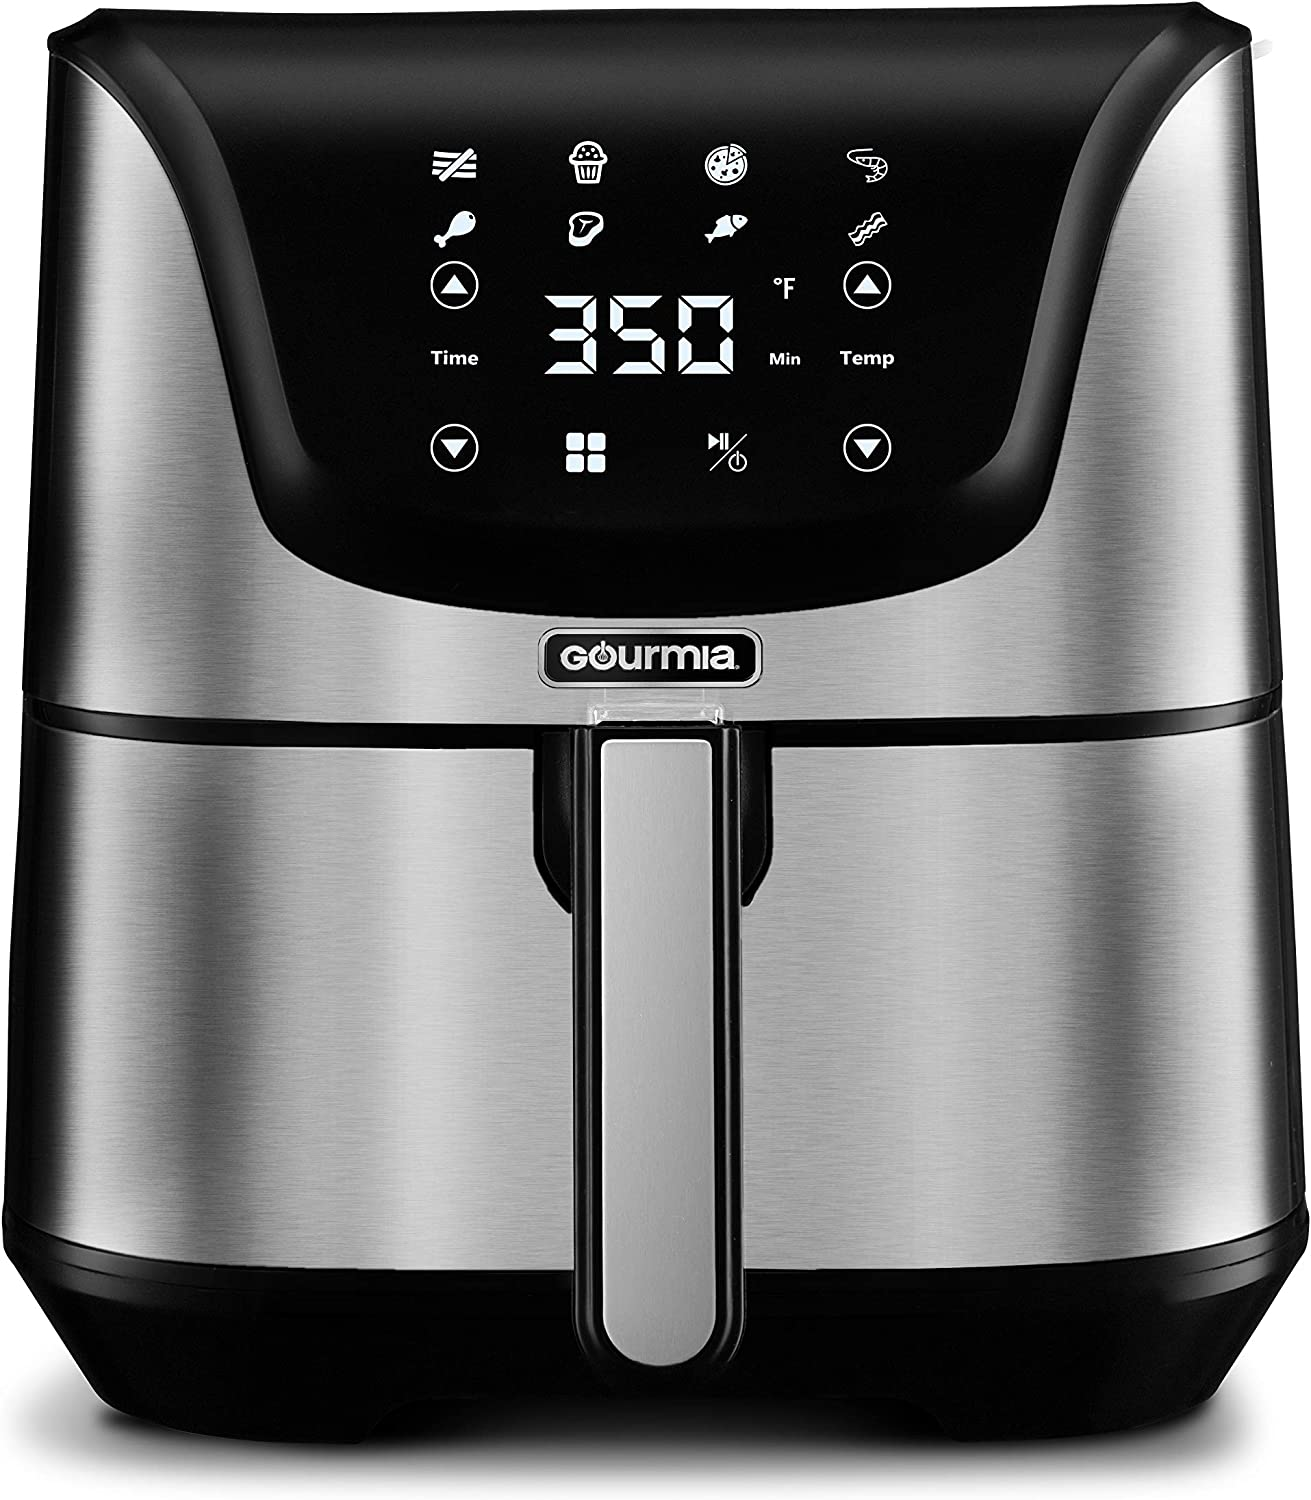 Gourmia GAF635 Digital Multi Mode Air Fryer - Oil-Free Healthy Cooking - 8 Preset Cook Modes - 6-Quart Capacity - Stainless Steel - Removable, Dishwasher-Safe Basket - Free Recipe Book Included